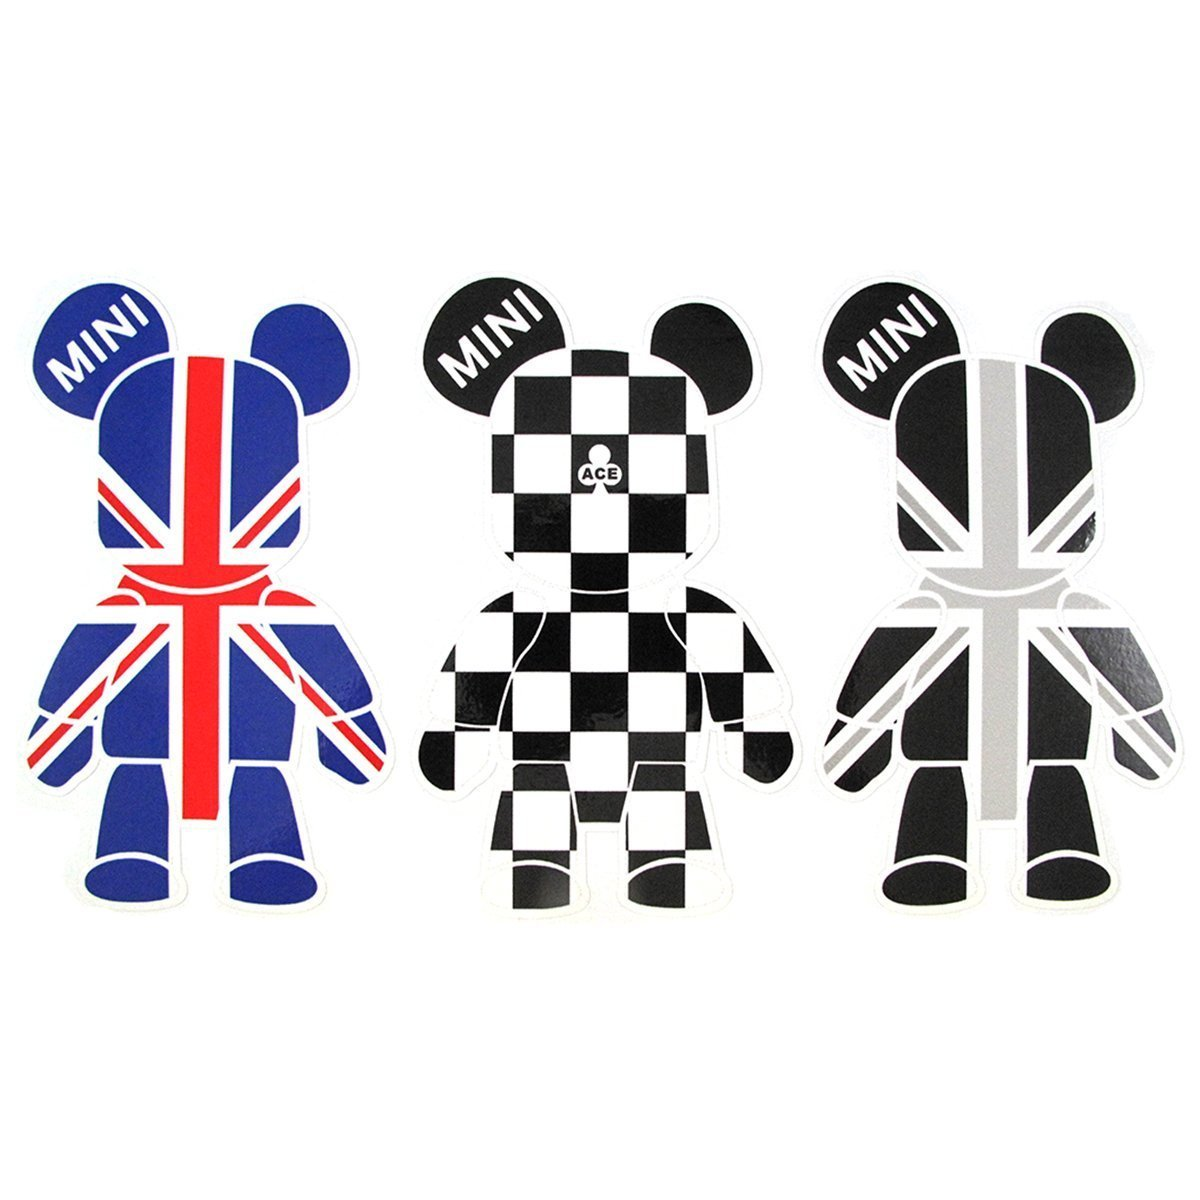 3 Pcs Mini Cooper Cute Cool Bears Exclusive Car Window Reflective Decals Stickers Checkered Union Jack UK Flag Sporty Style For Car Truck Window Trunk Door or Laptop refrigerator etc Xotic Tech Direct